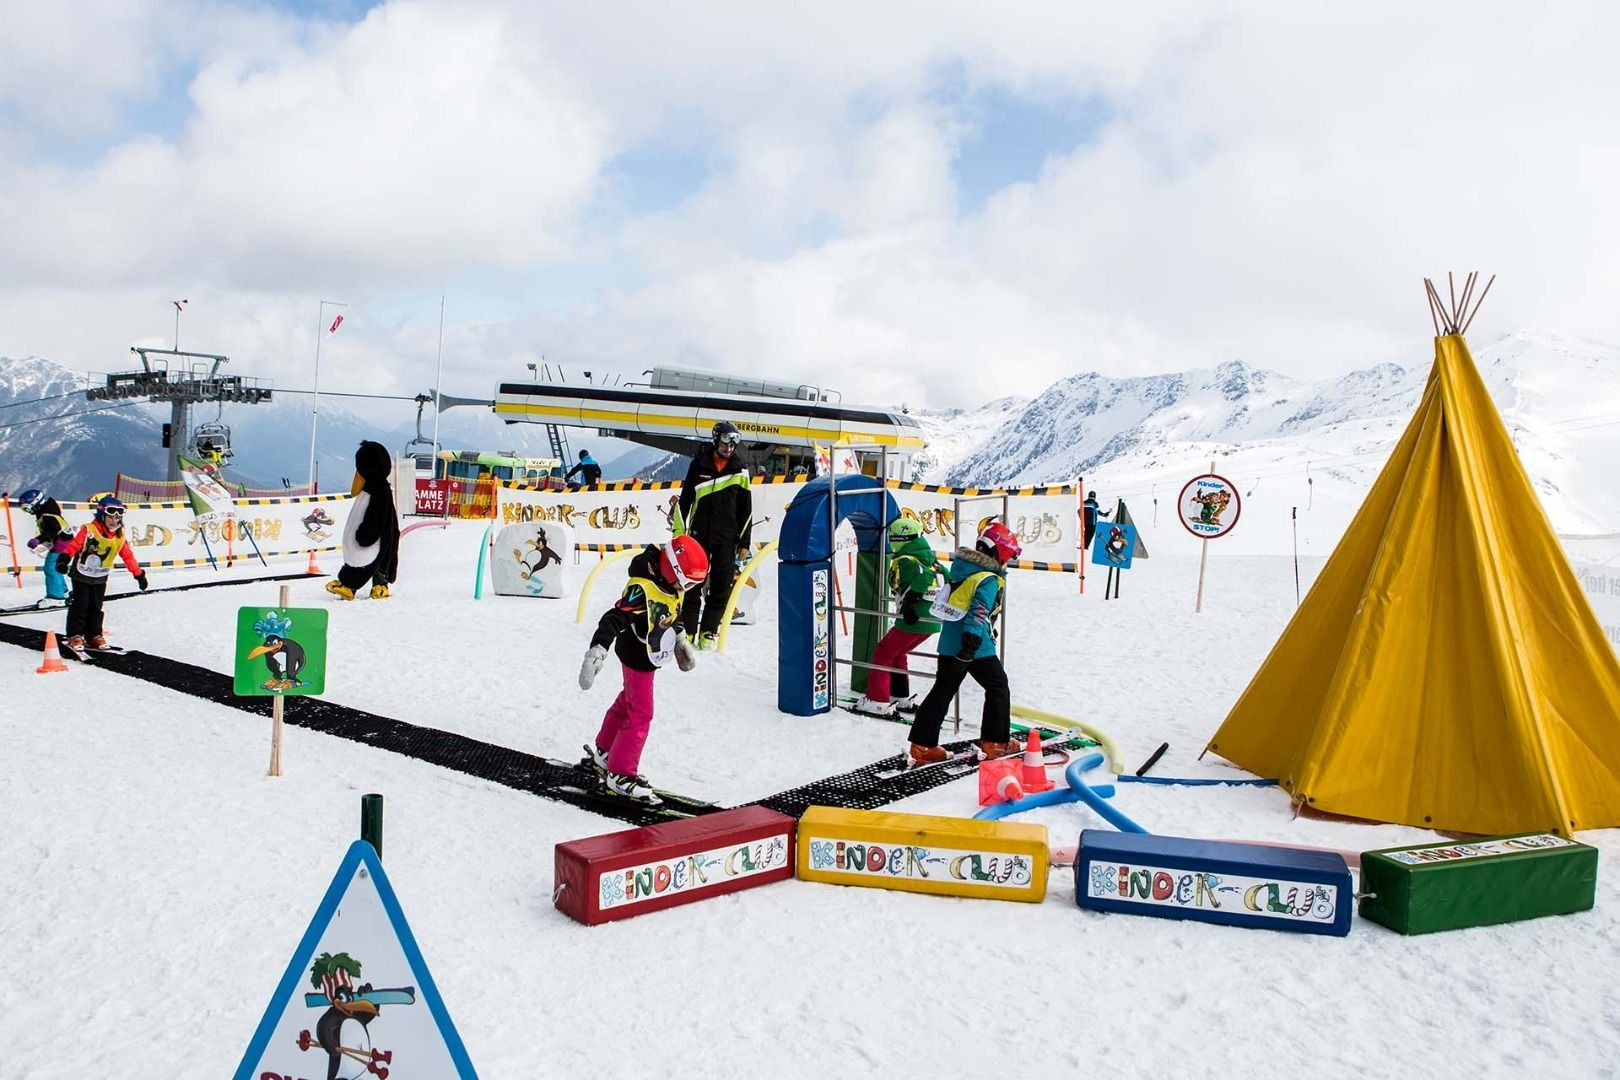 Landeck-Zams mountain and ski school